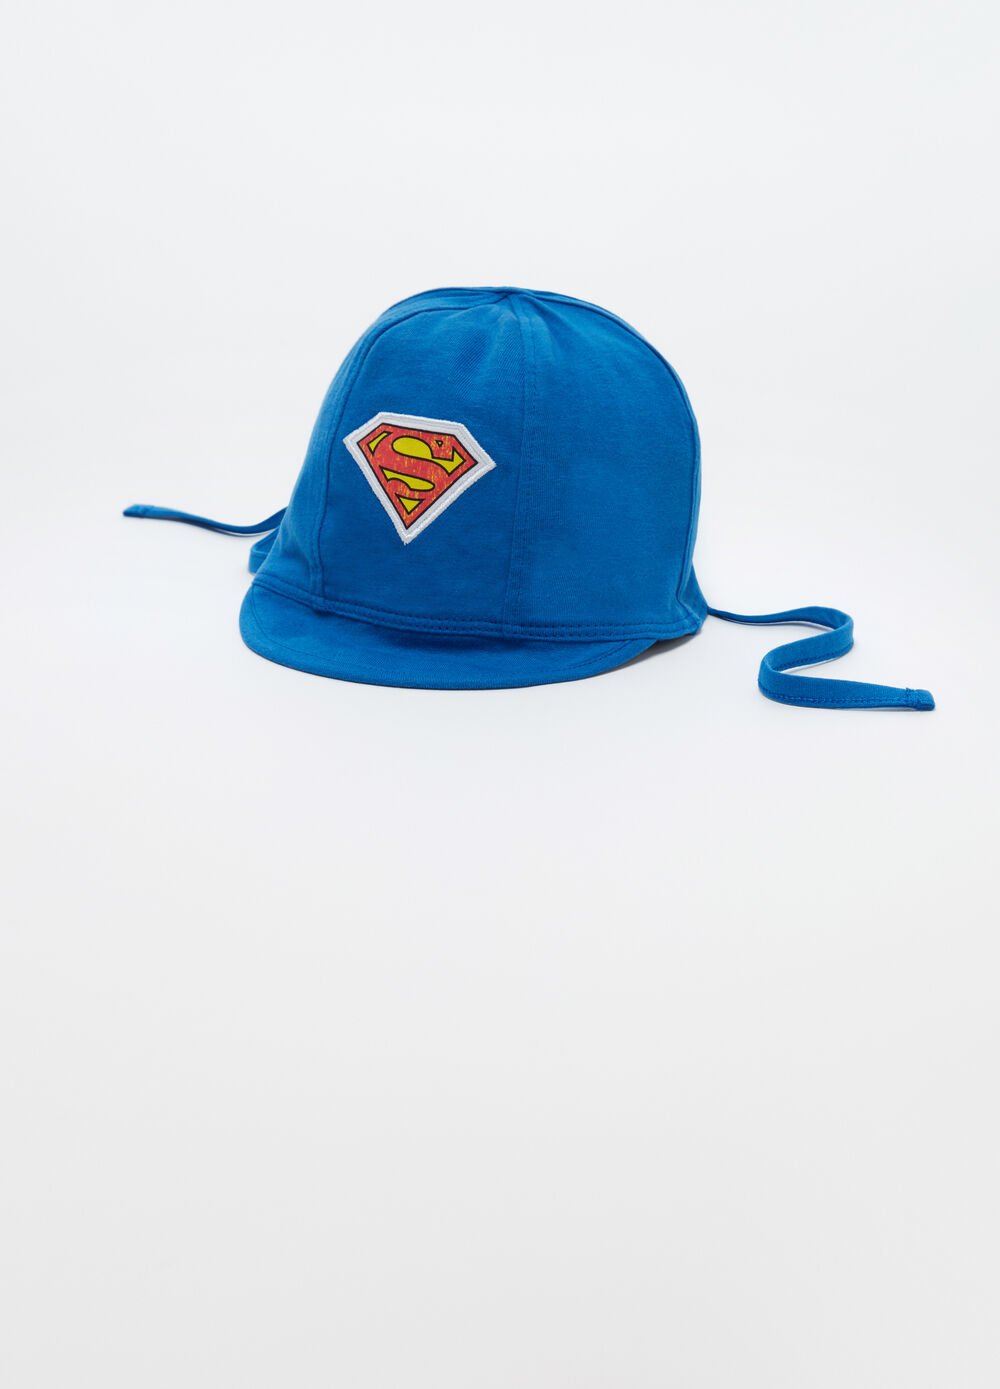 Baseball cap with visor and Superman patch